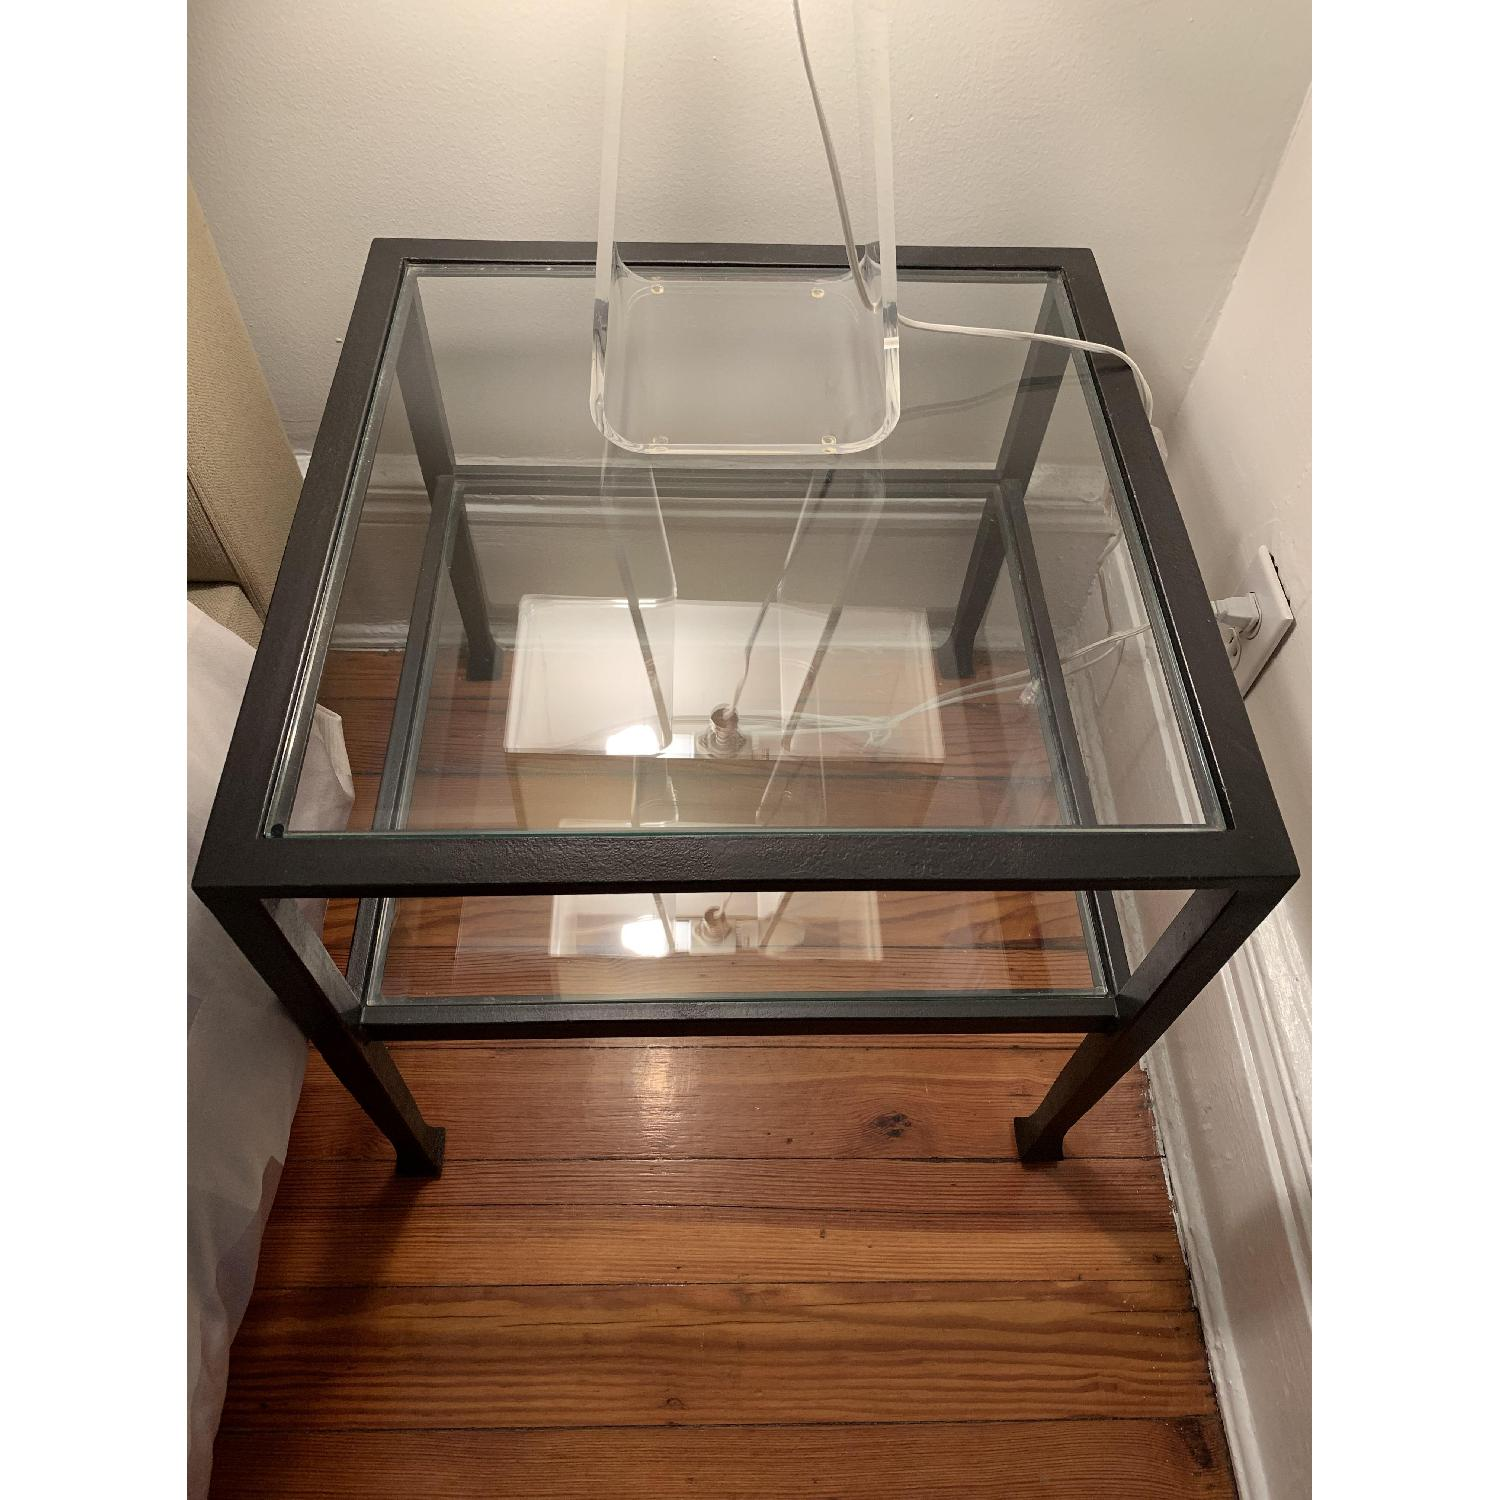 Iron Framed Pottery Barn Side Tables with Glass Top & Shelf - image-6